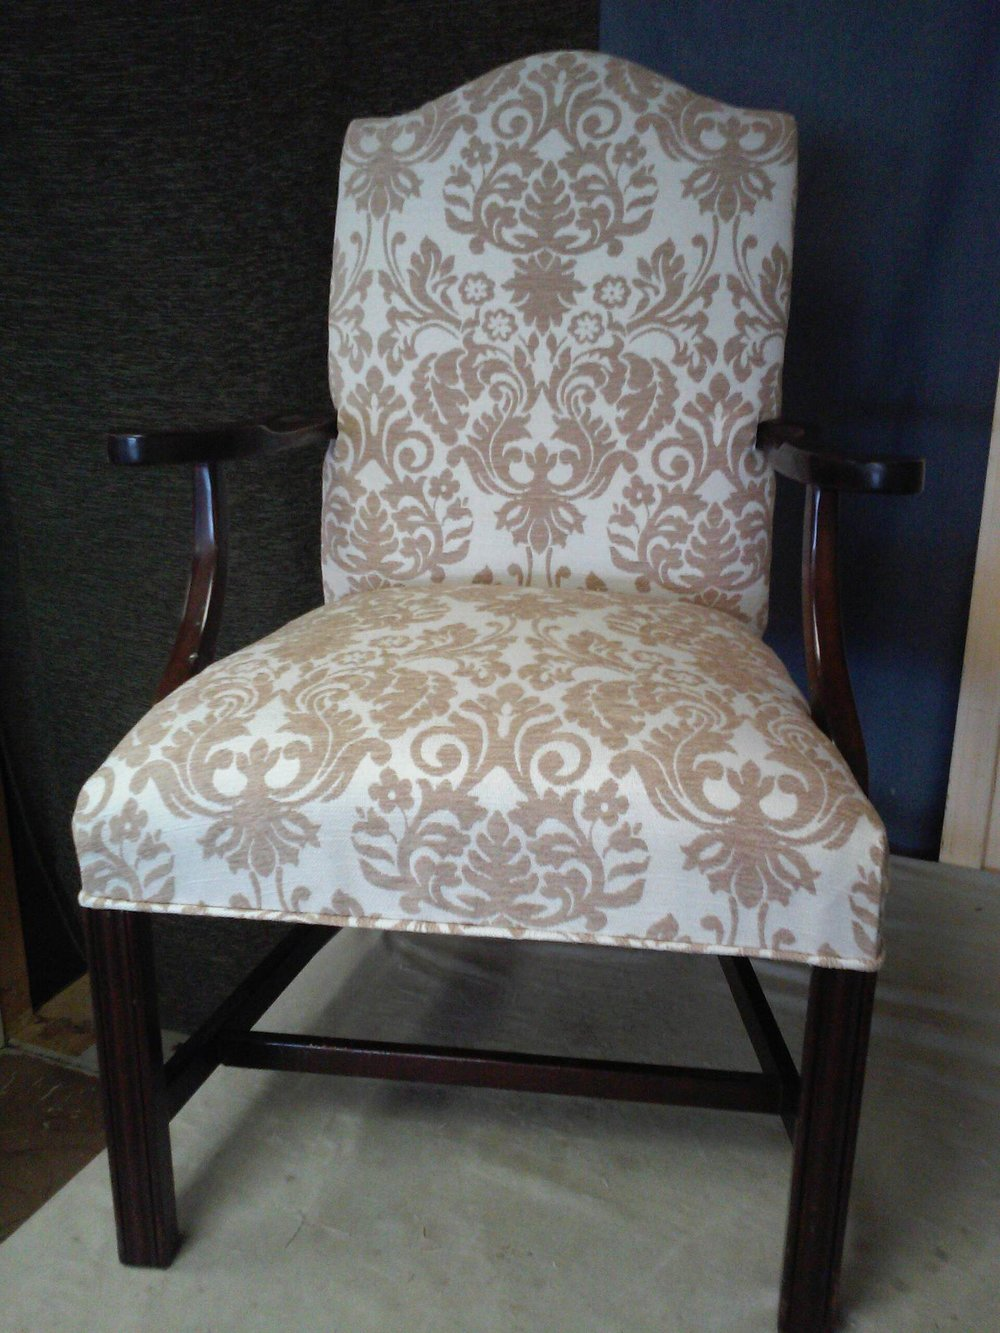 Chair upholstery by Eric's Upholstery